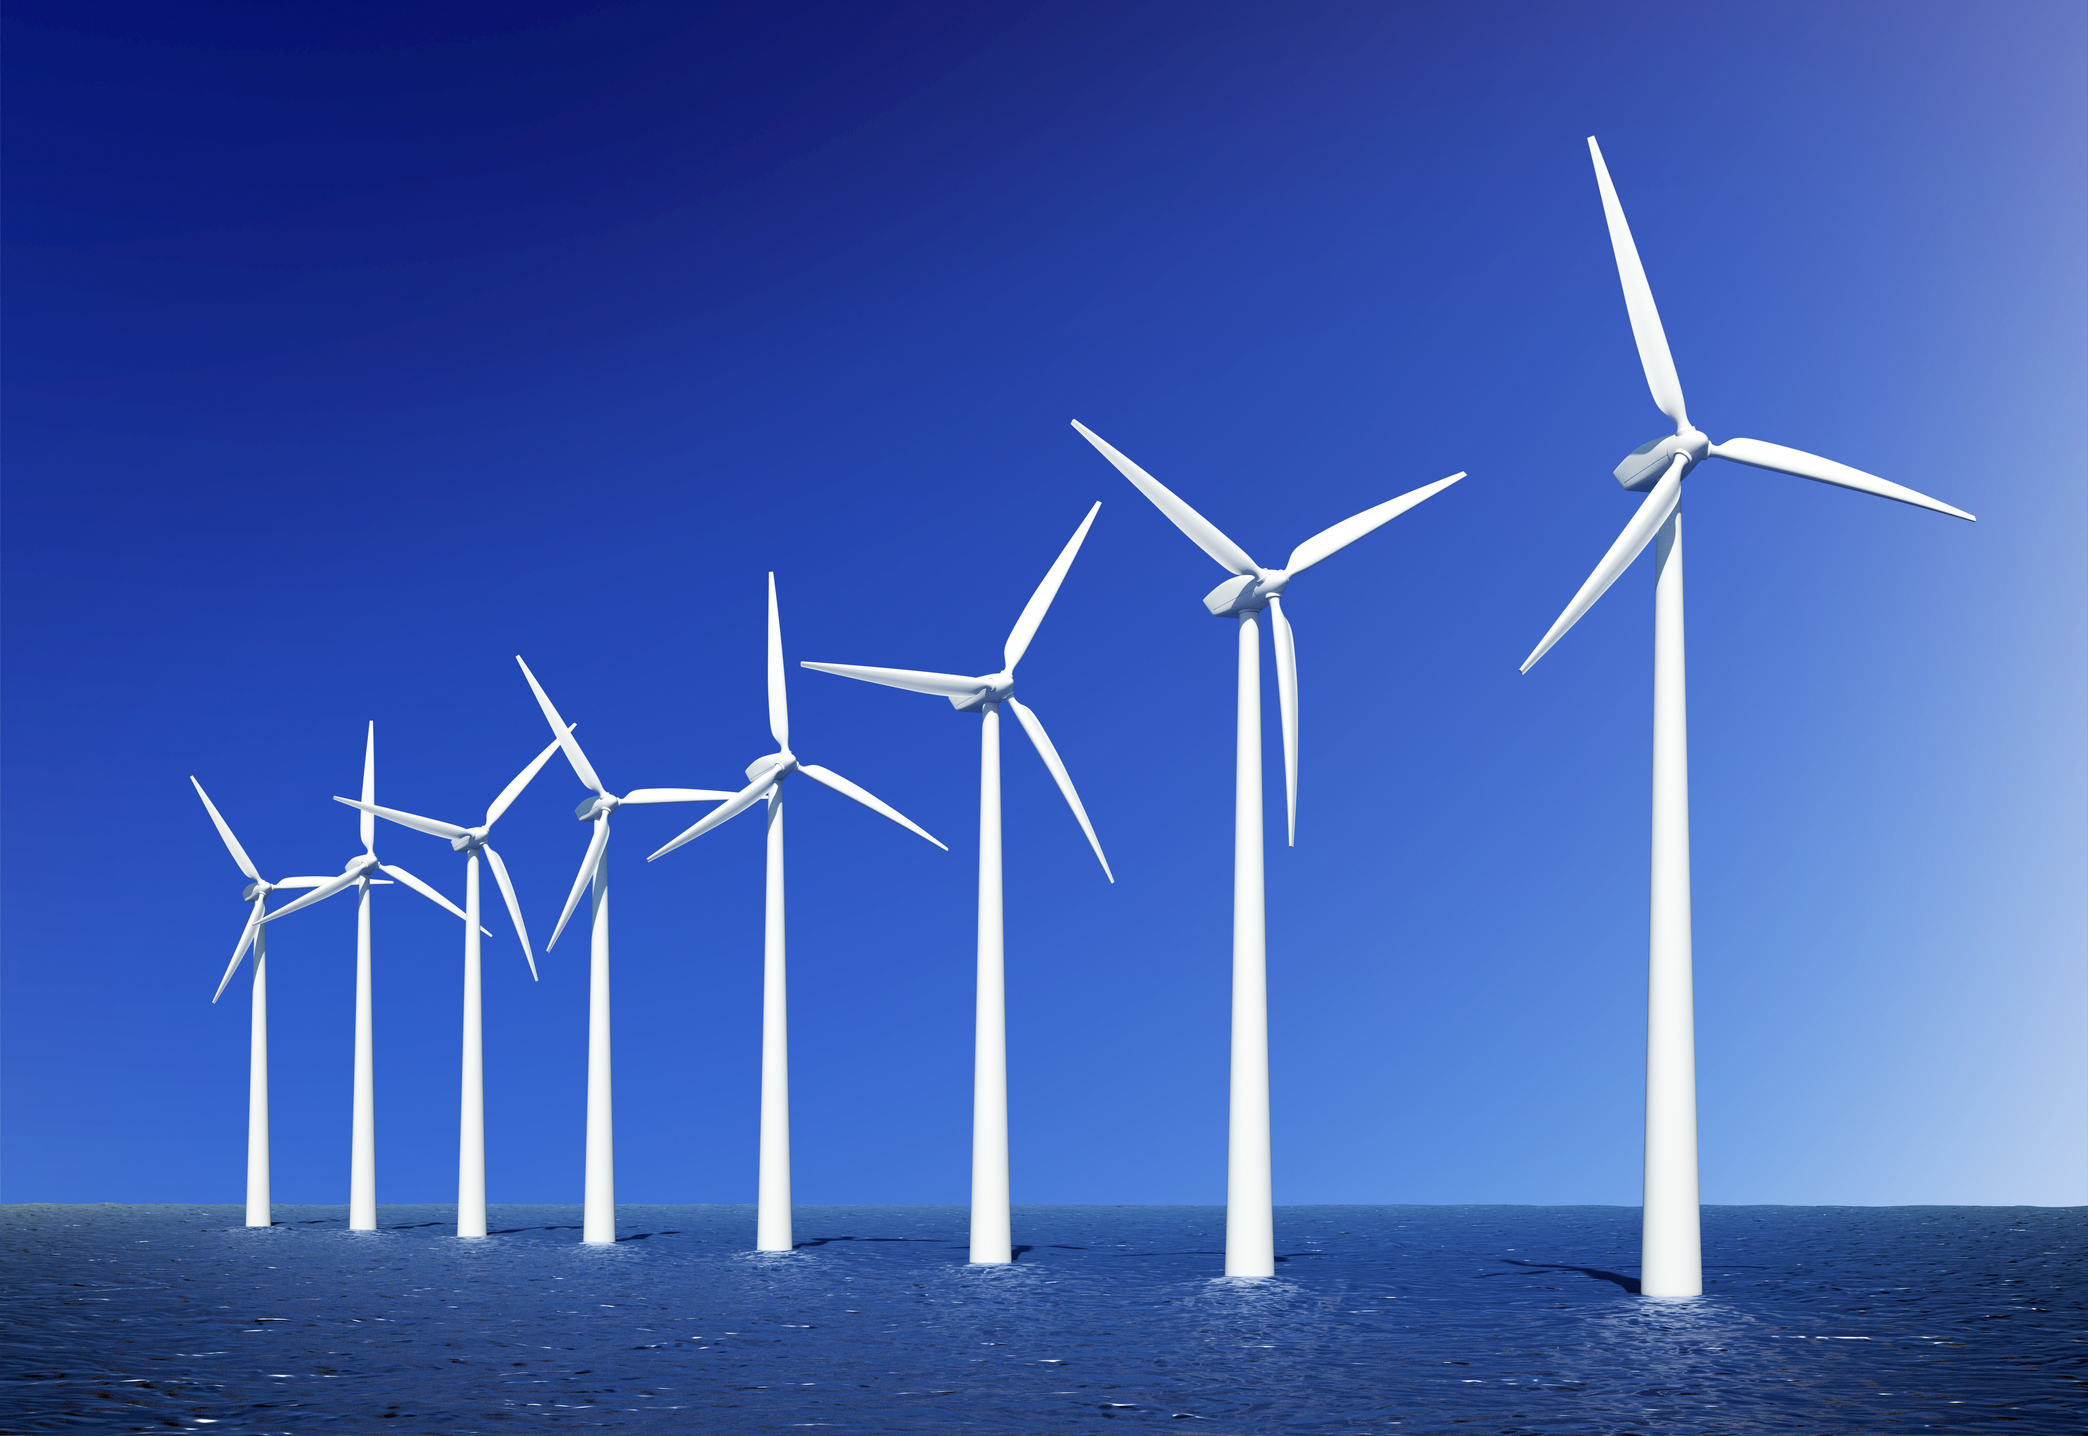 MEMBER NEWS: Three Lessons From COVID-19 For Renewable Energy Companies With Remote Or Offshore Operations